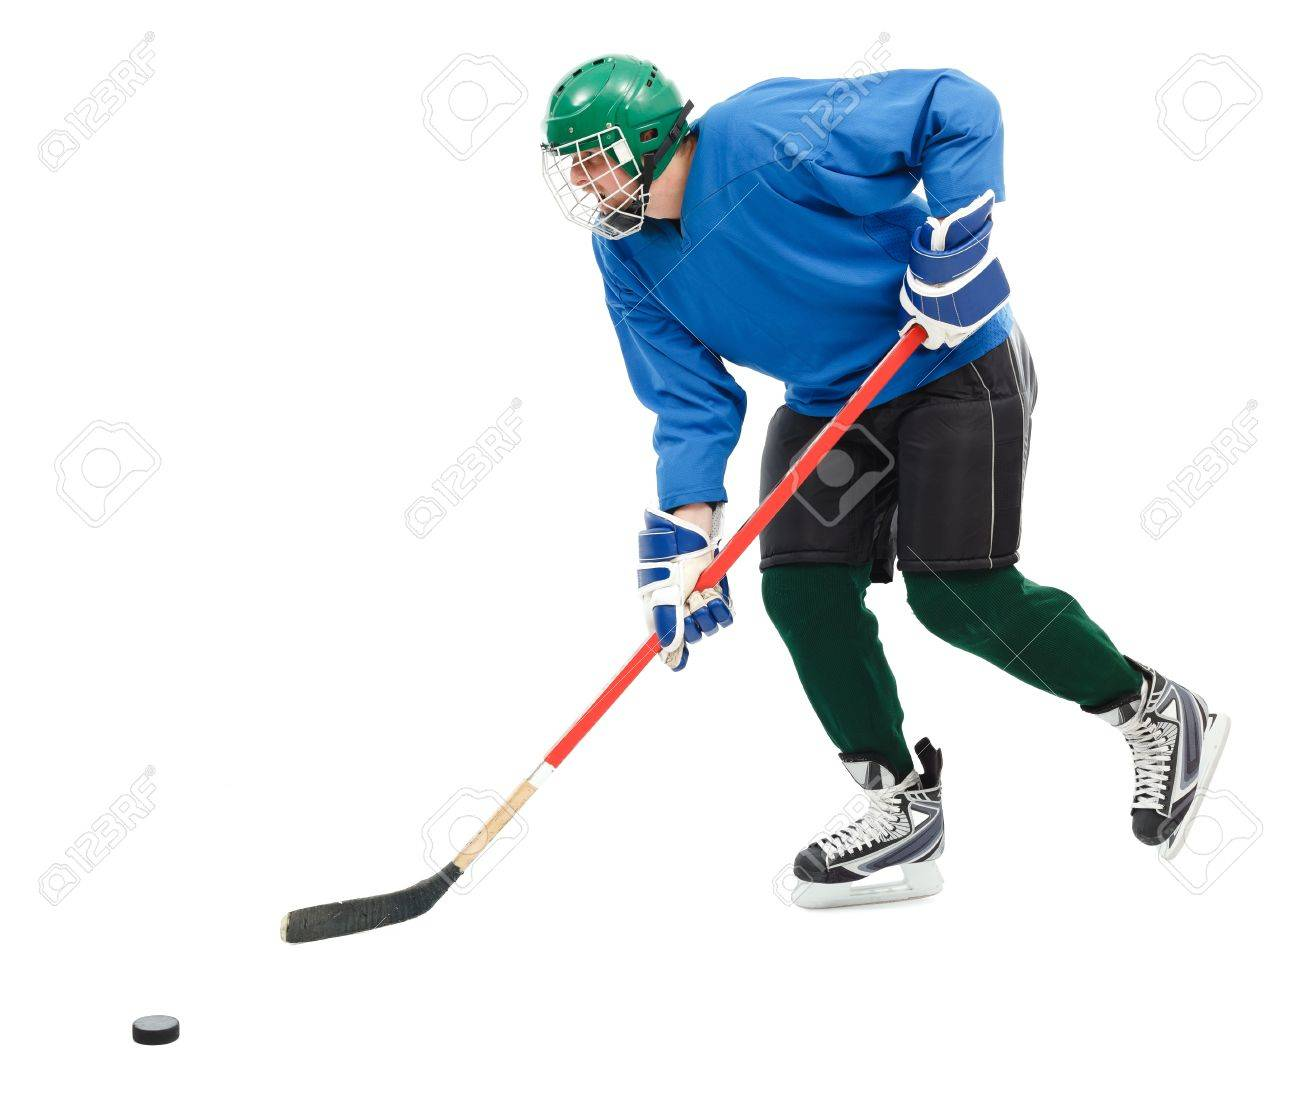 Ice hockey player in blue wear, skating fast and handling puck Stock Photo - 9198073